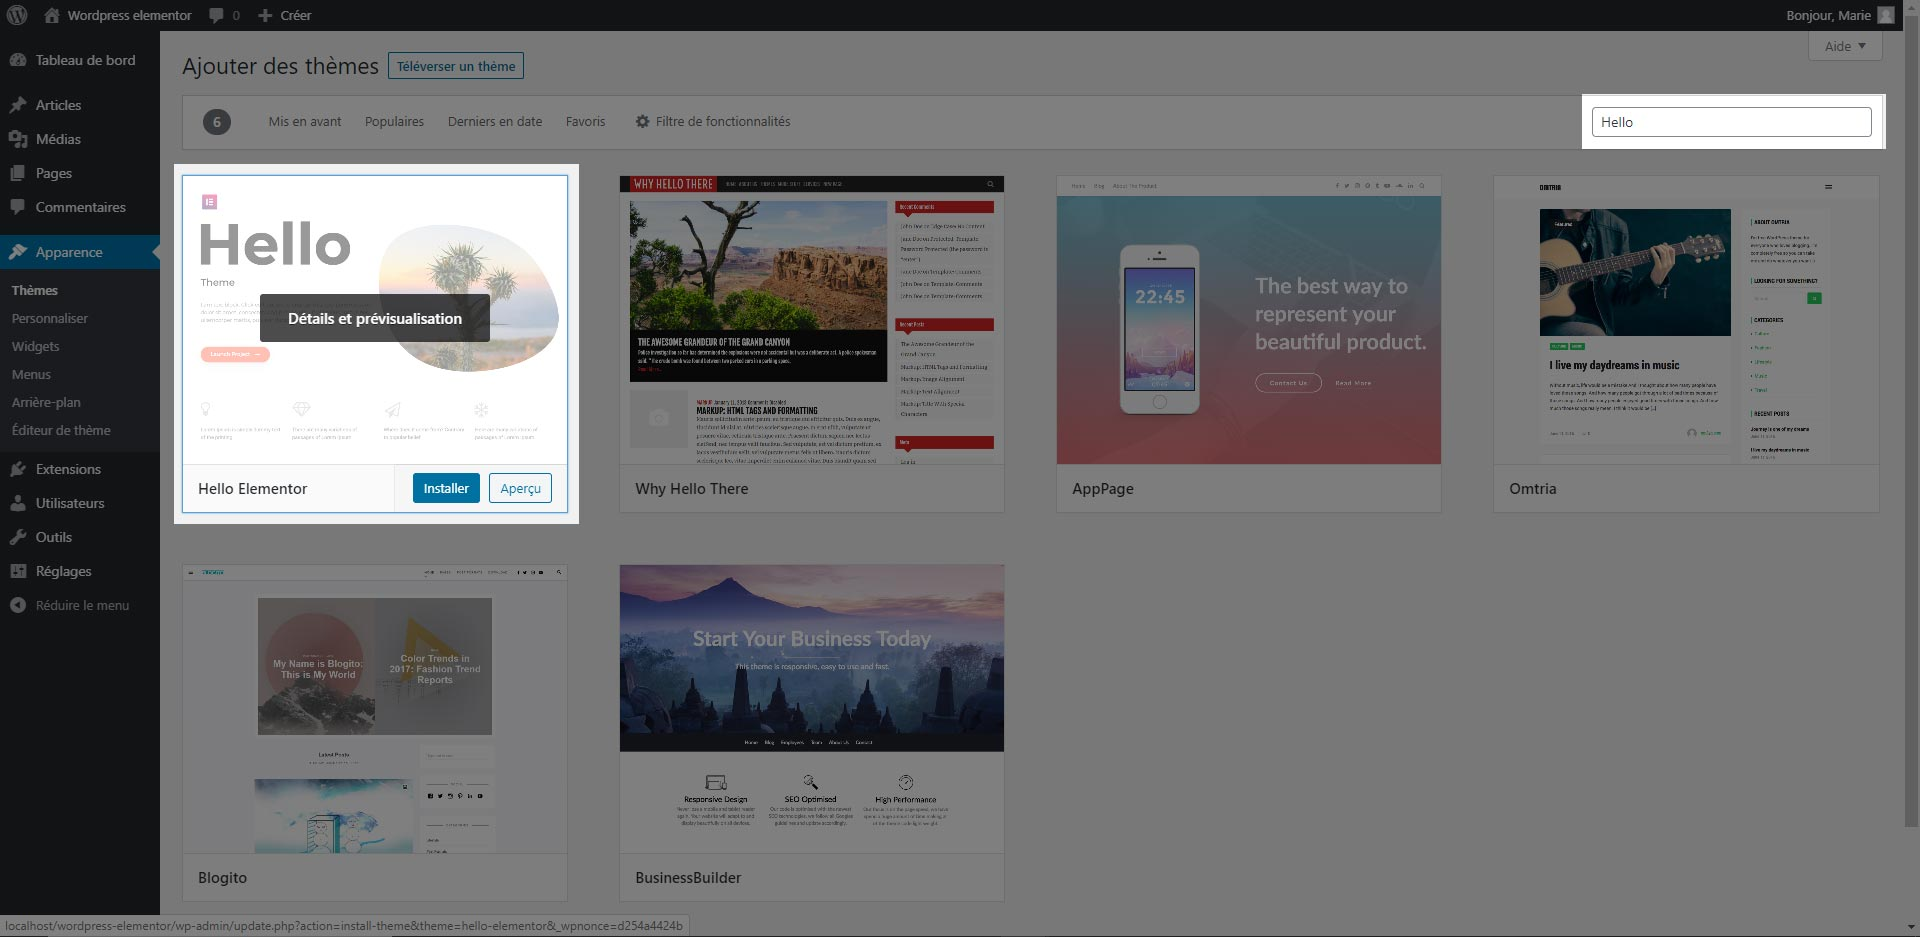 theme-hello-wordpress-elementor